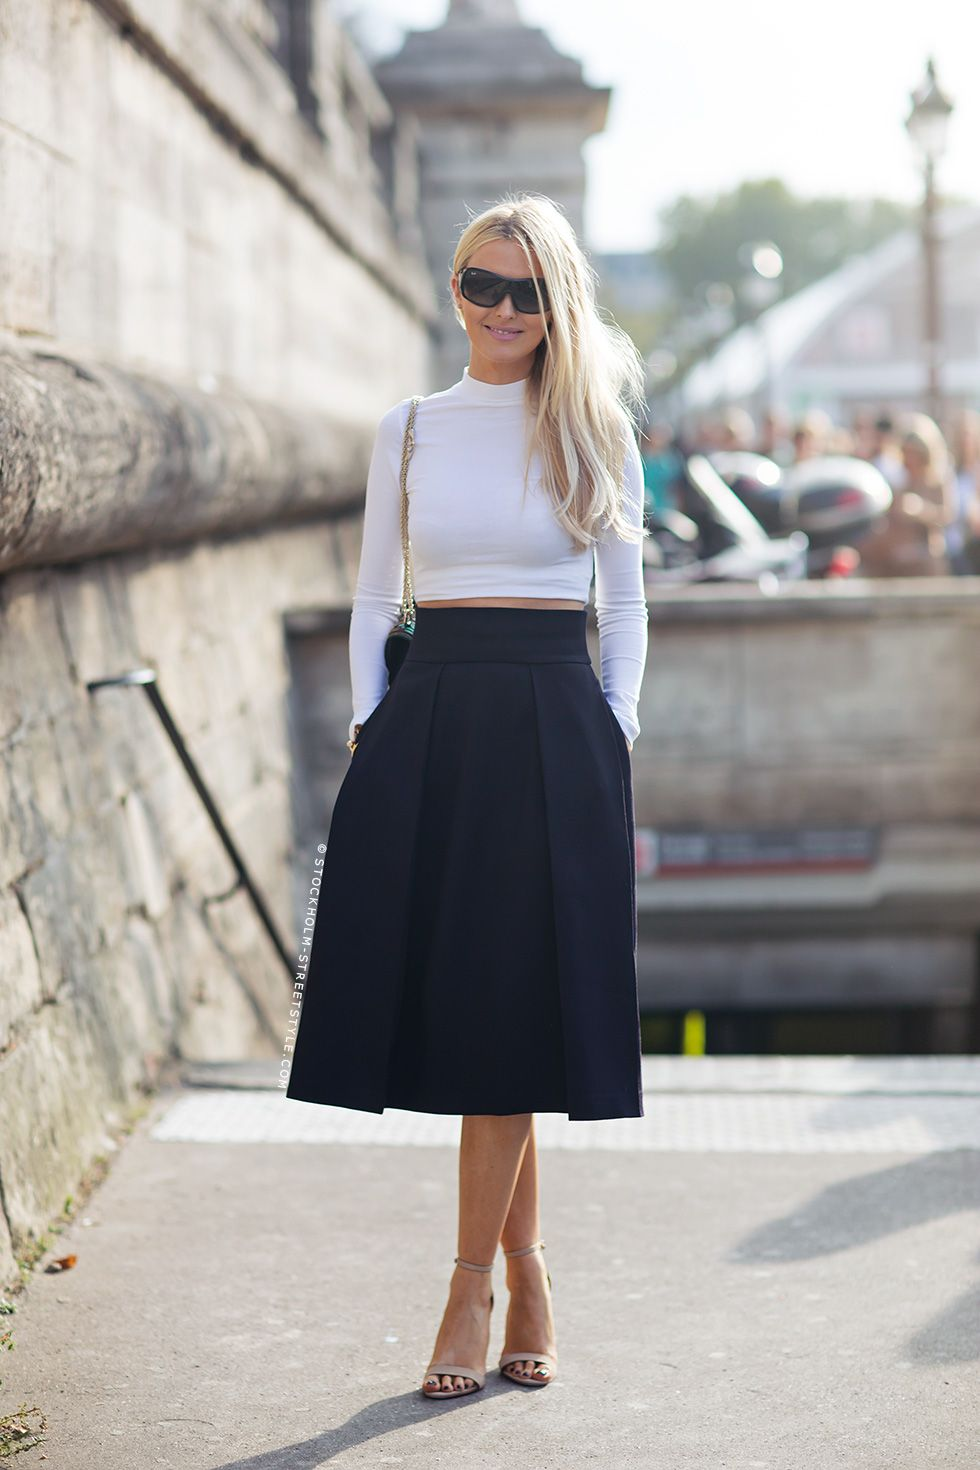 Tell me about your outfit, what you are wearing? - Im wearing skirt and top from Marni, shoes...